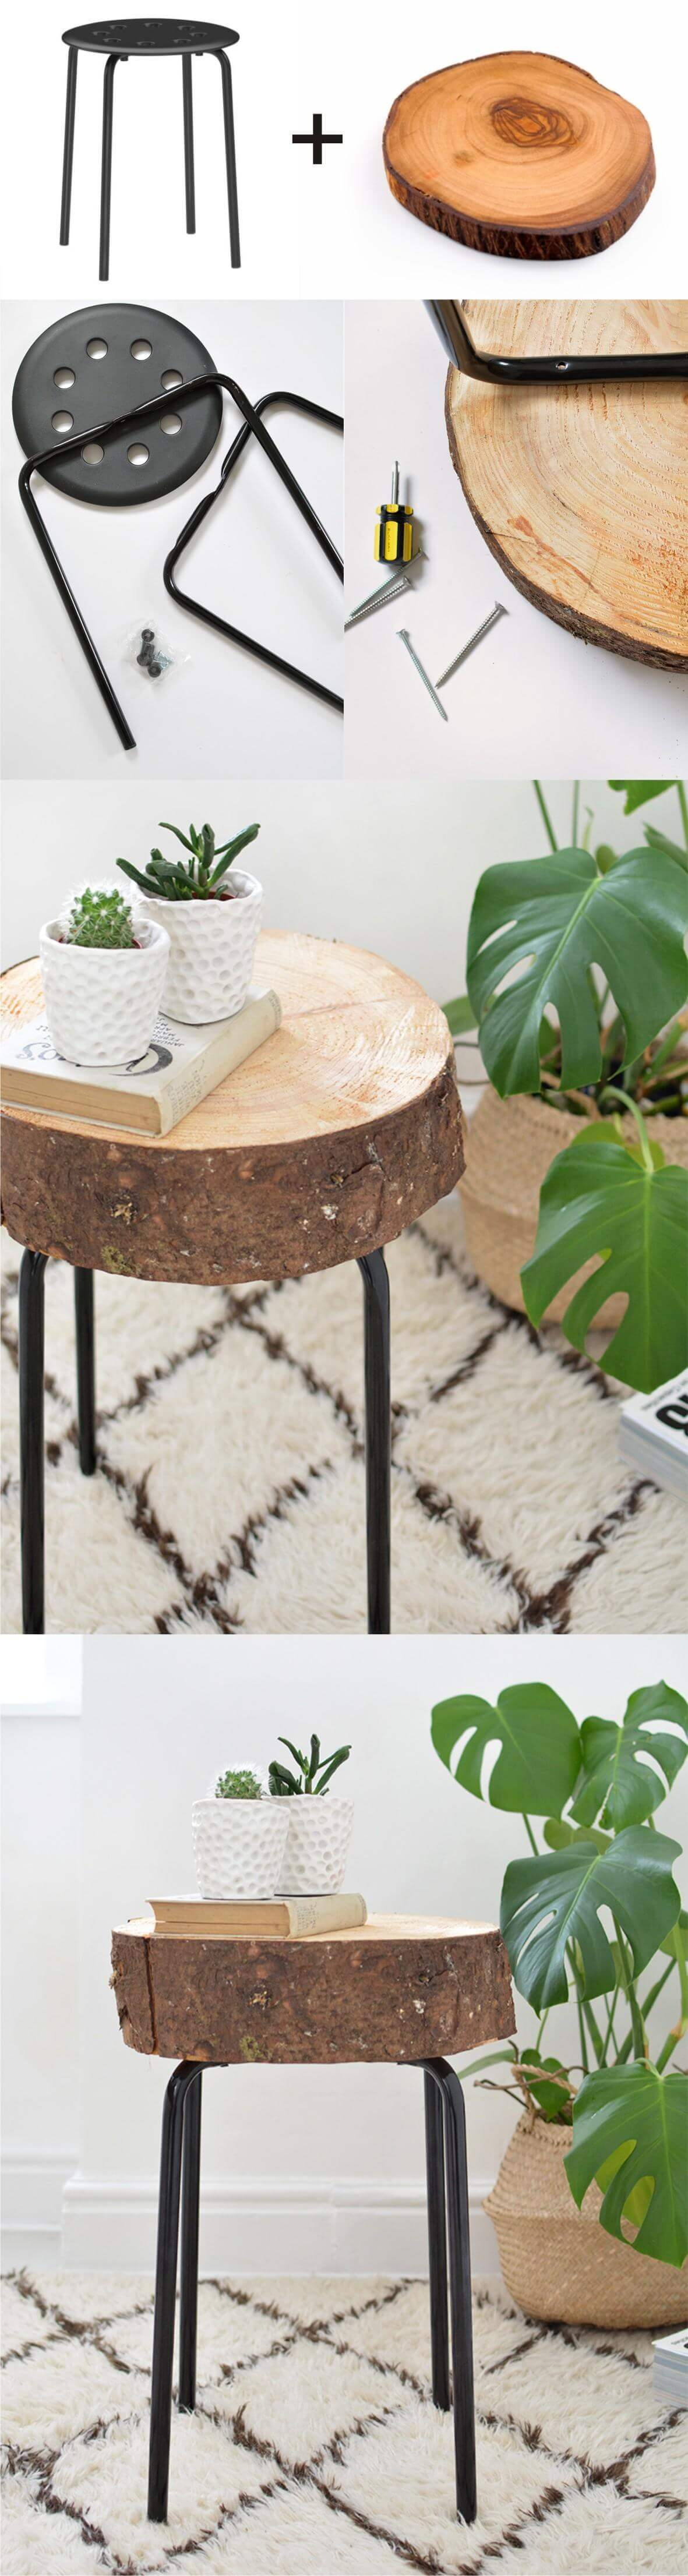 15 Outstanding DIY Side Table Projects You Will Not Be Able To Resist